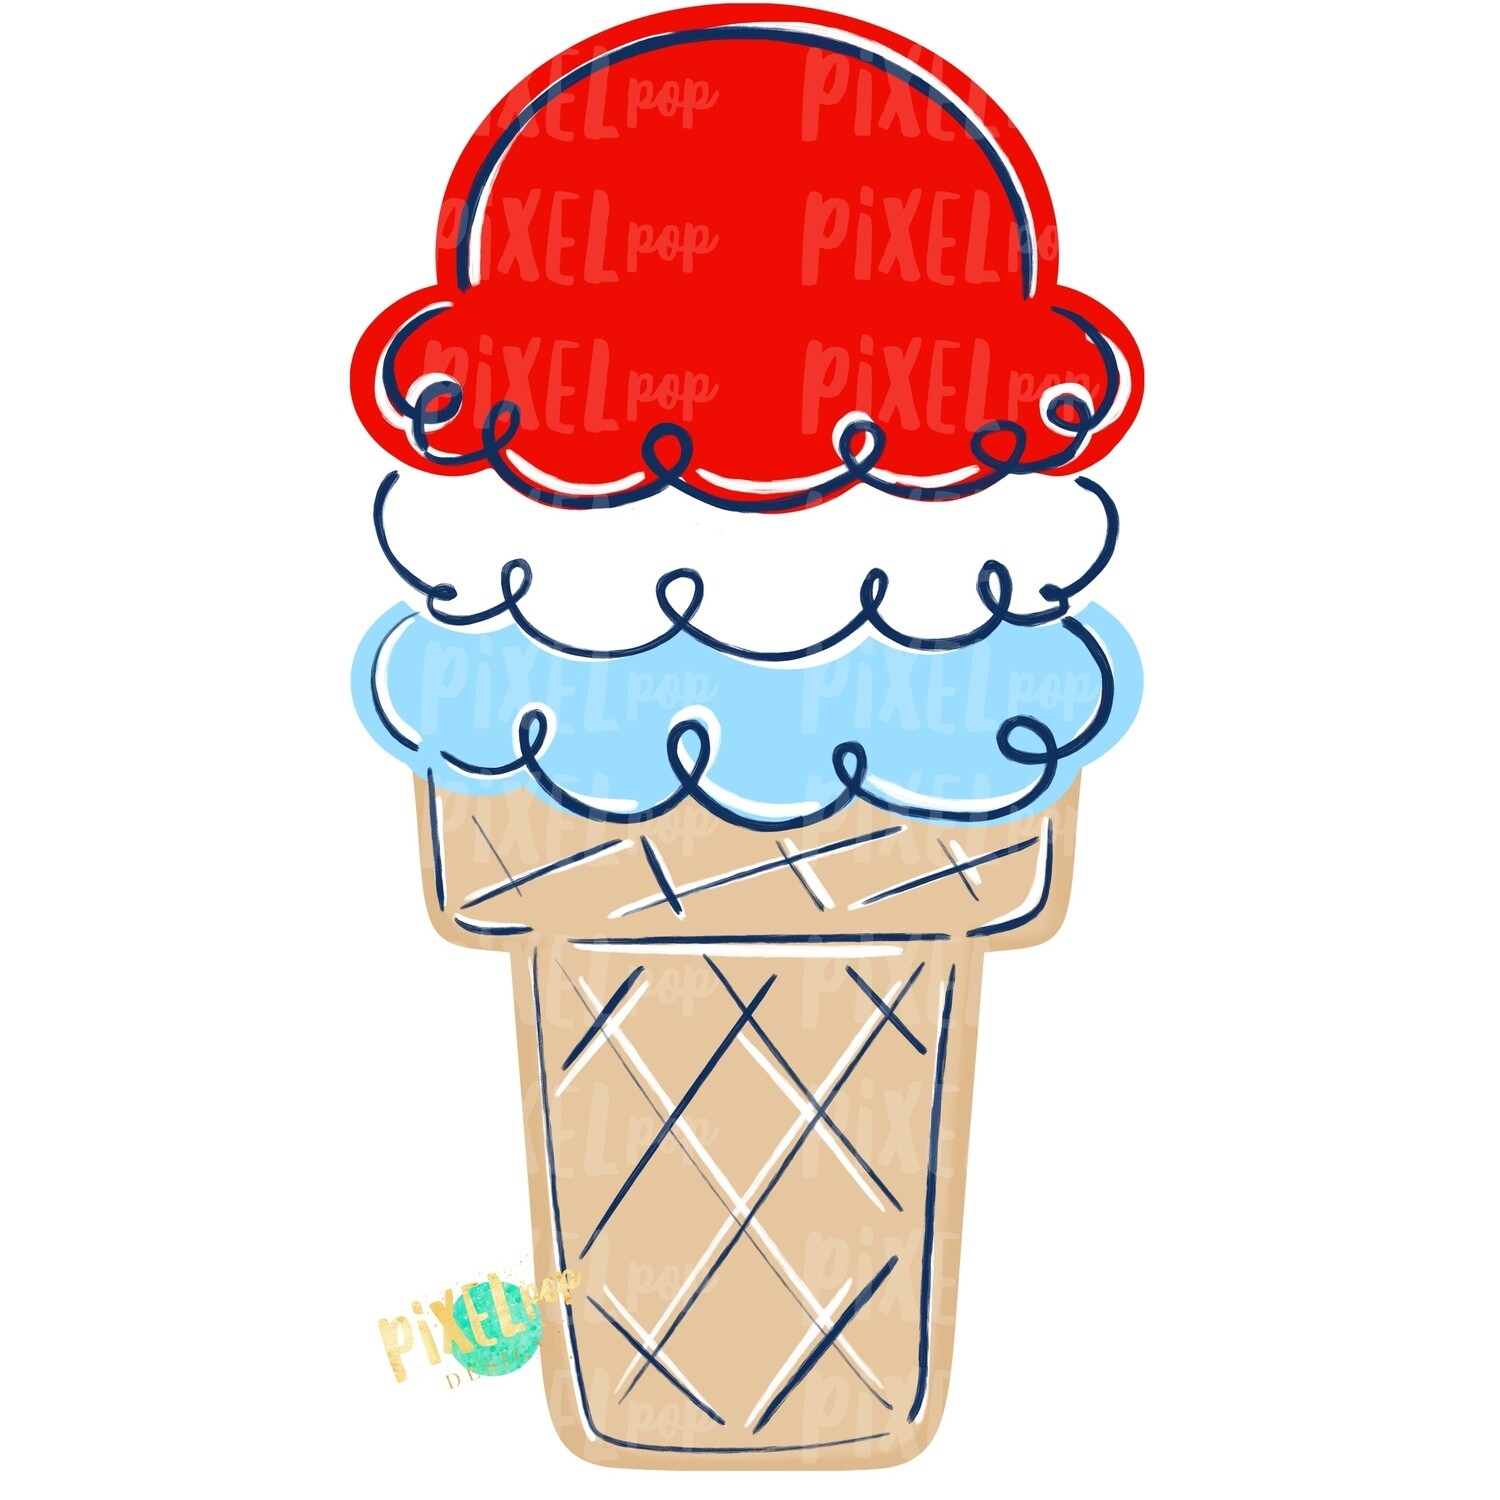 July 4th Ice Cream PNG | Independence Day | Ice Cream | Sweets | Sublimation Design | Hand Painted Digital Art | Digital Download | Clip Art